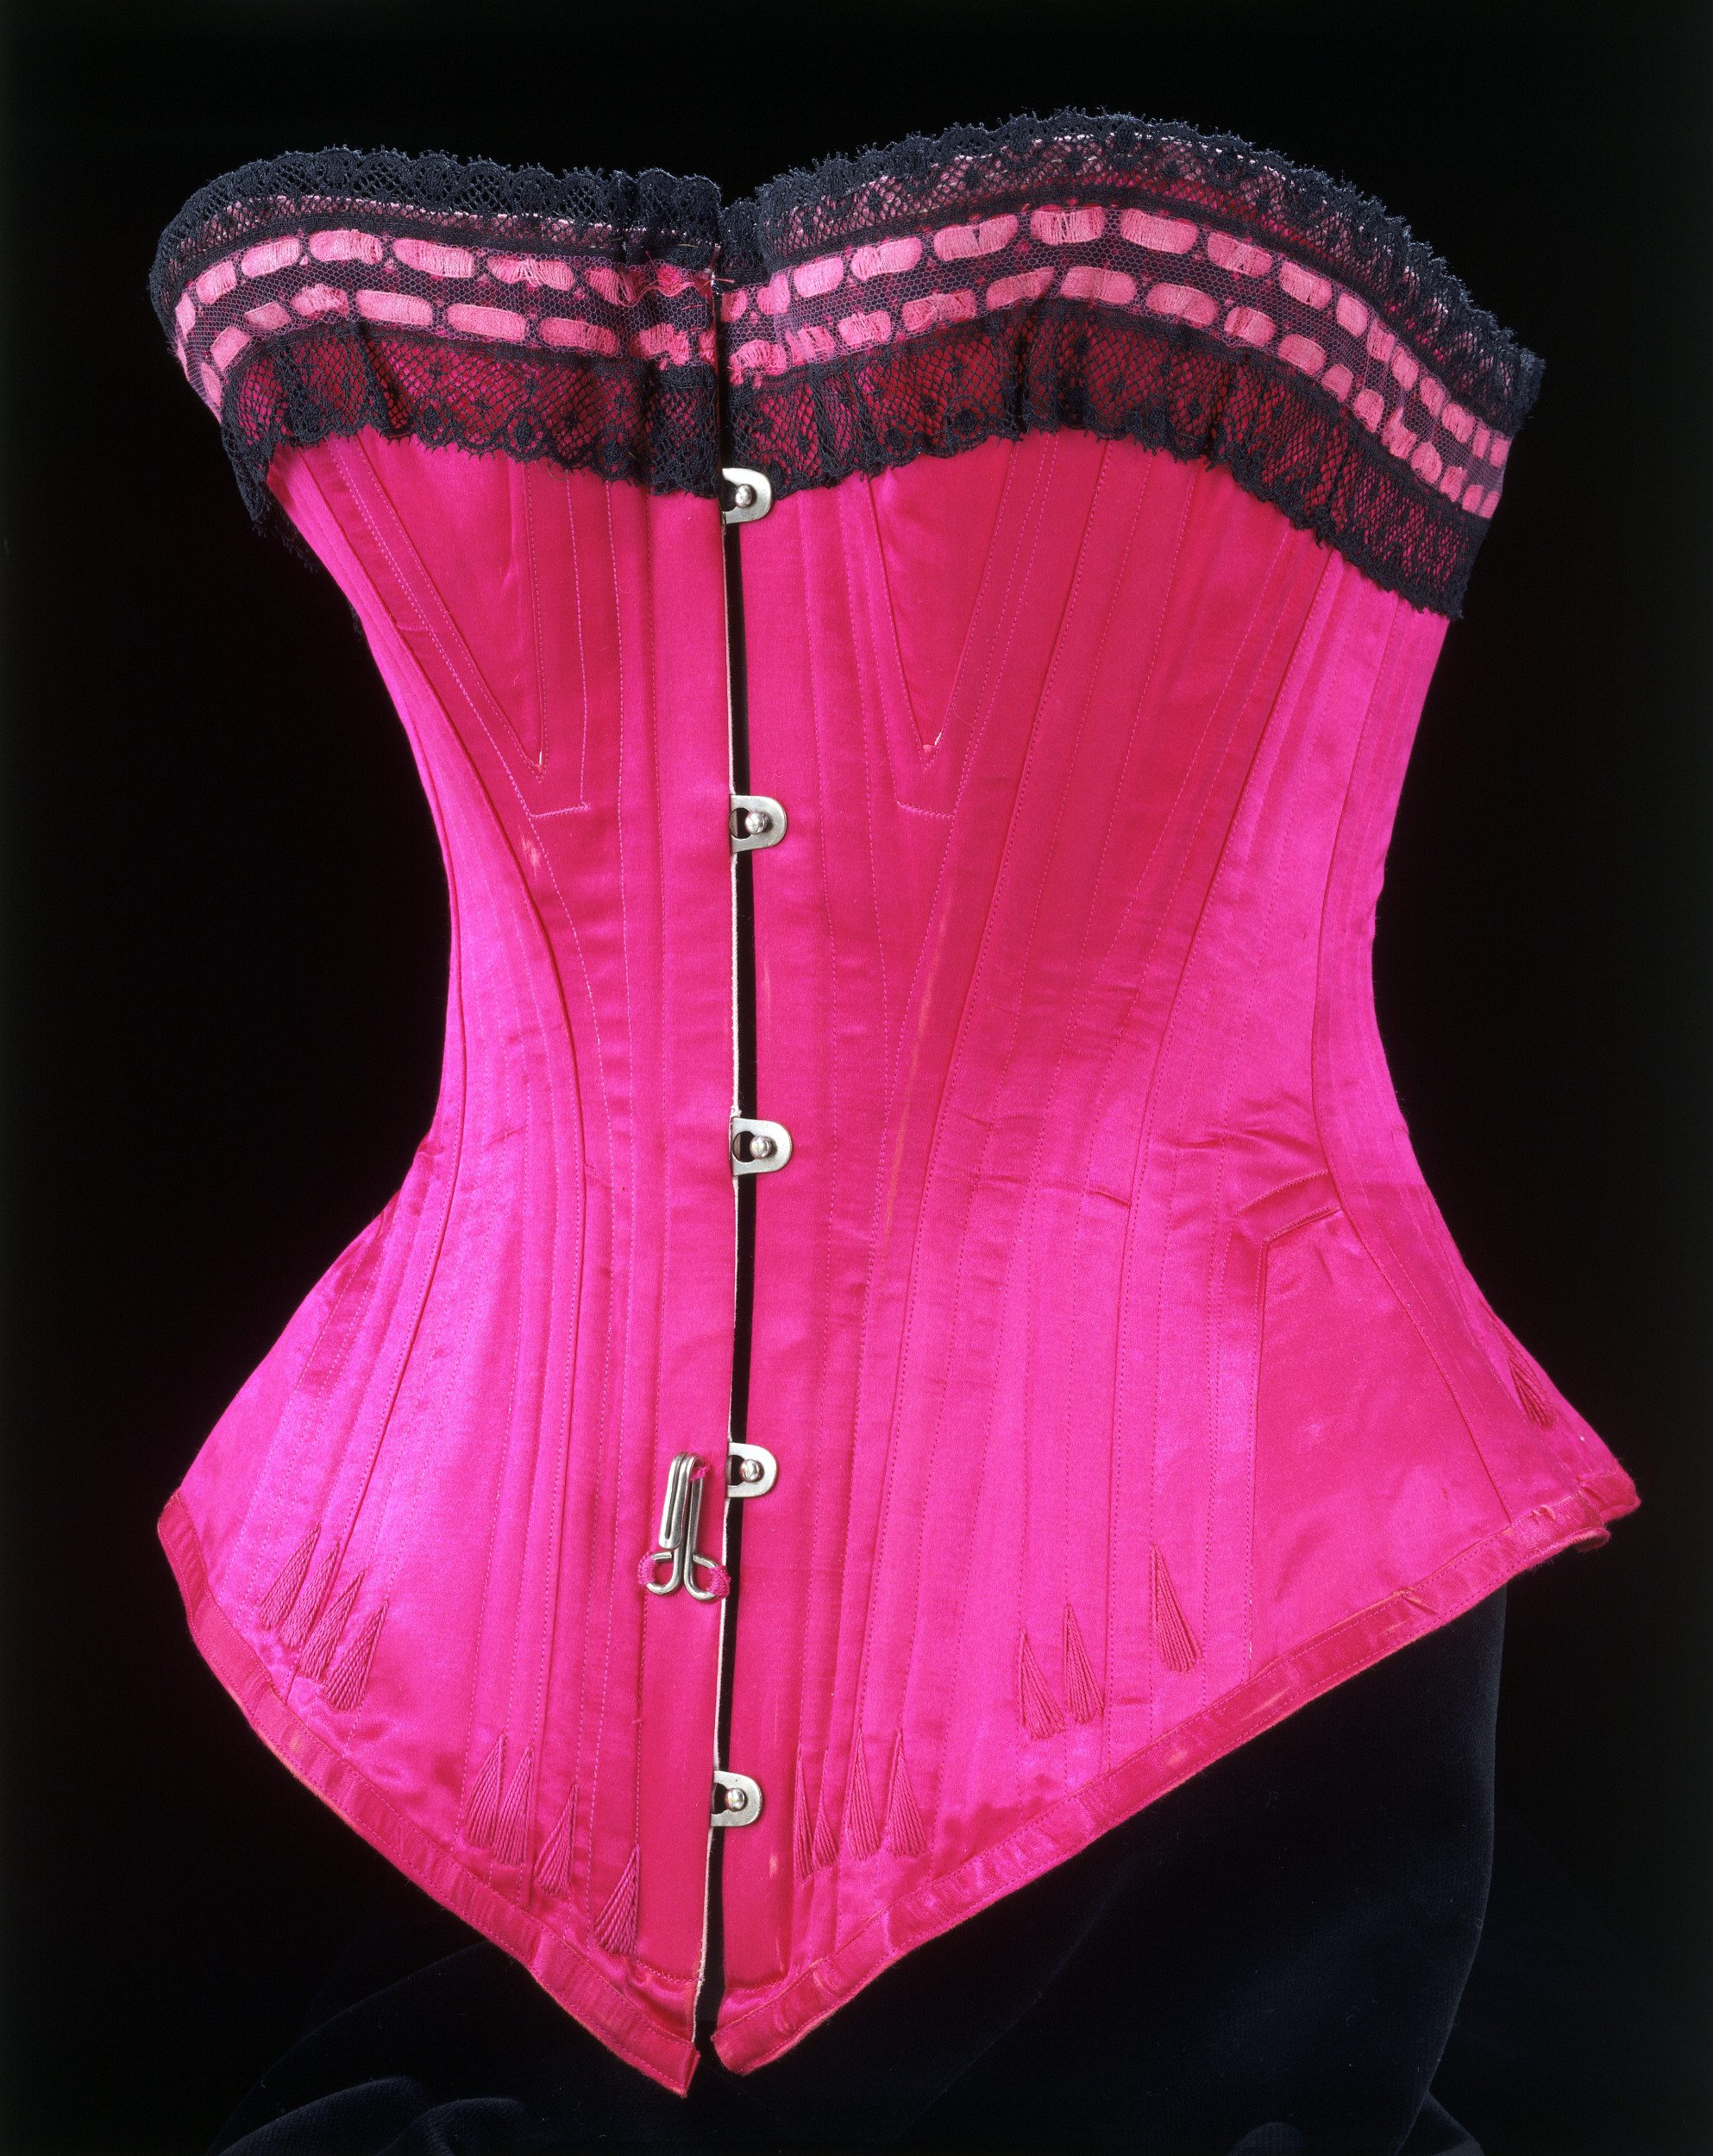 Corset_1890-1895_c_Victoria_and_Albert_Museum_London